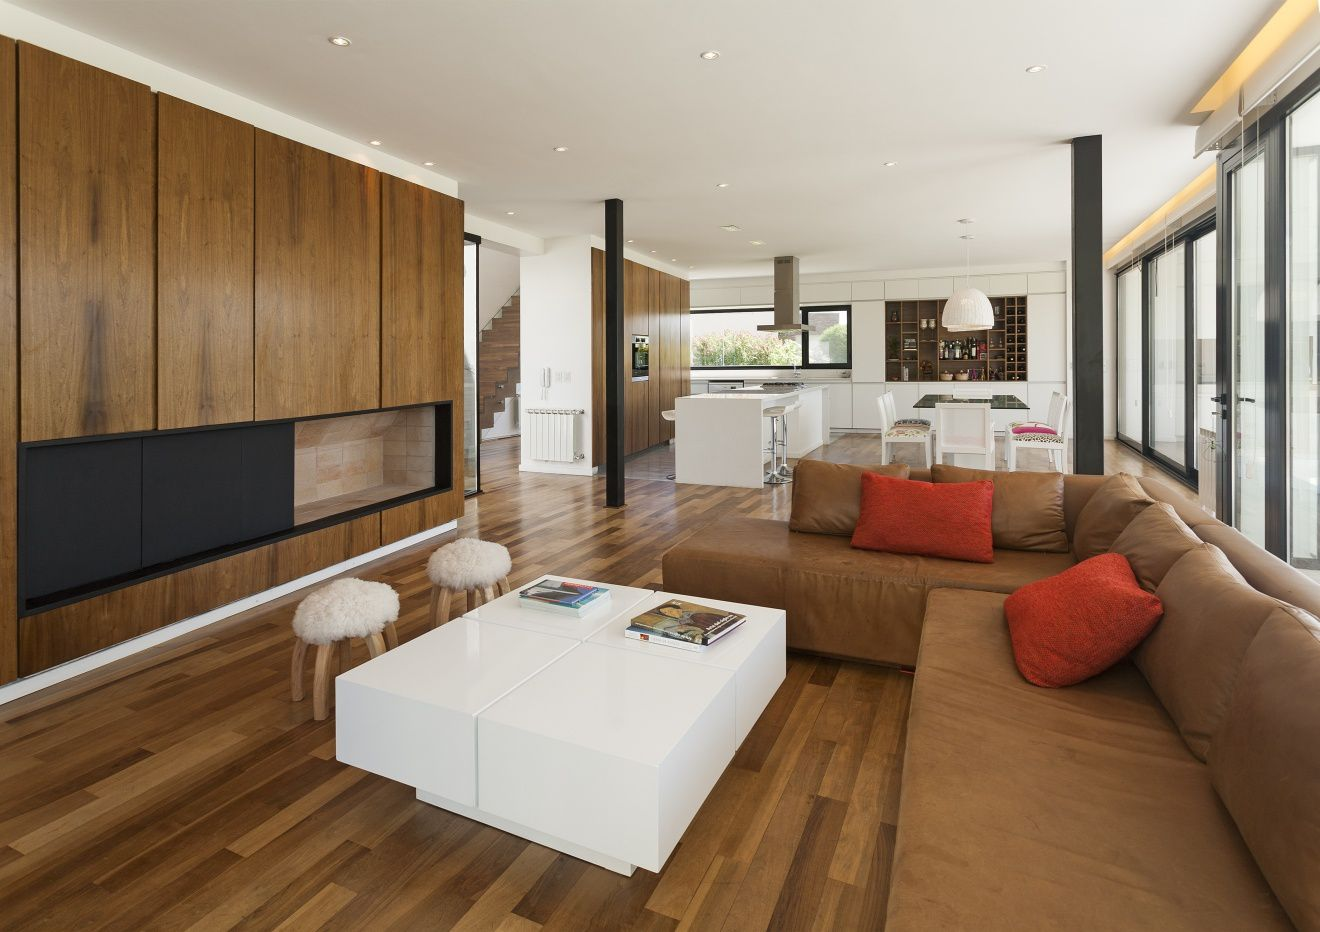 Casa MC Golf Club - Vismaracorsi Arquitectos